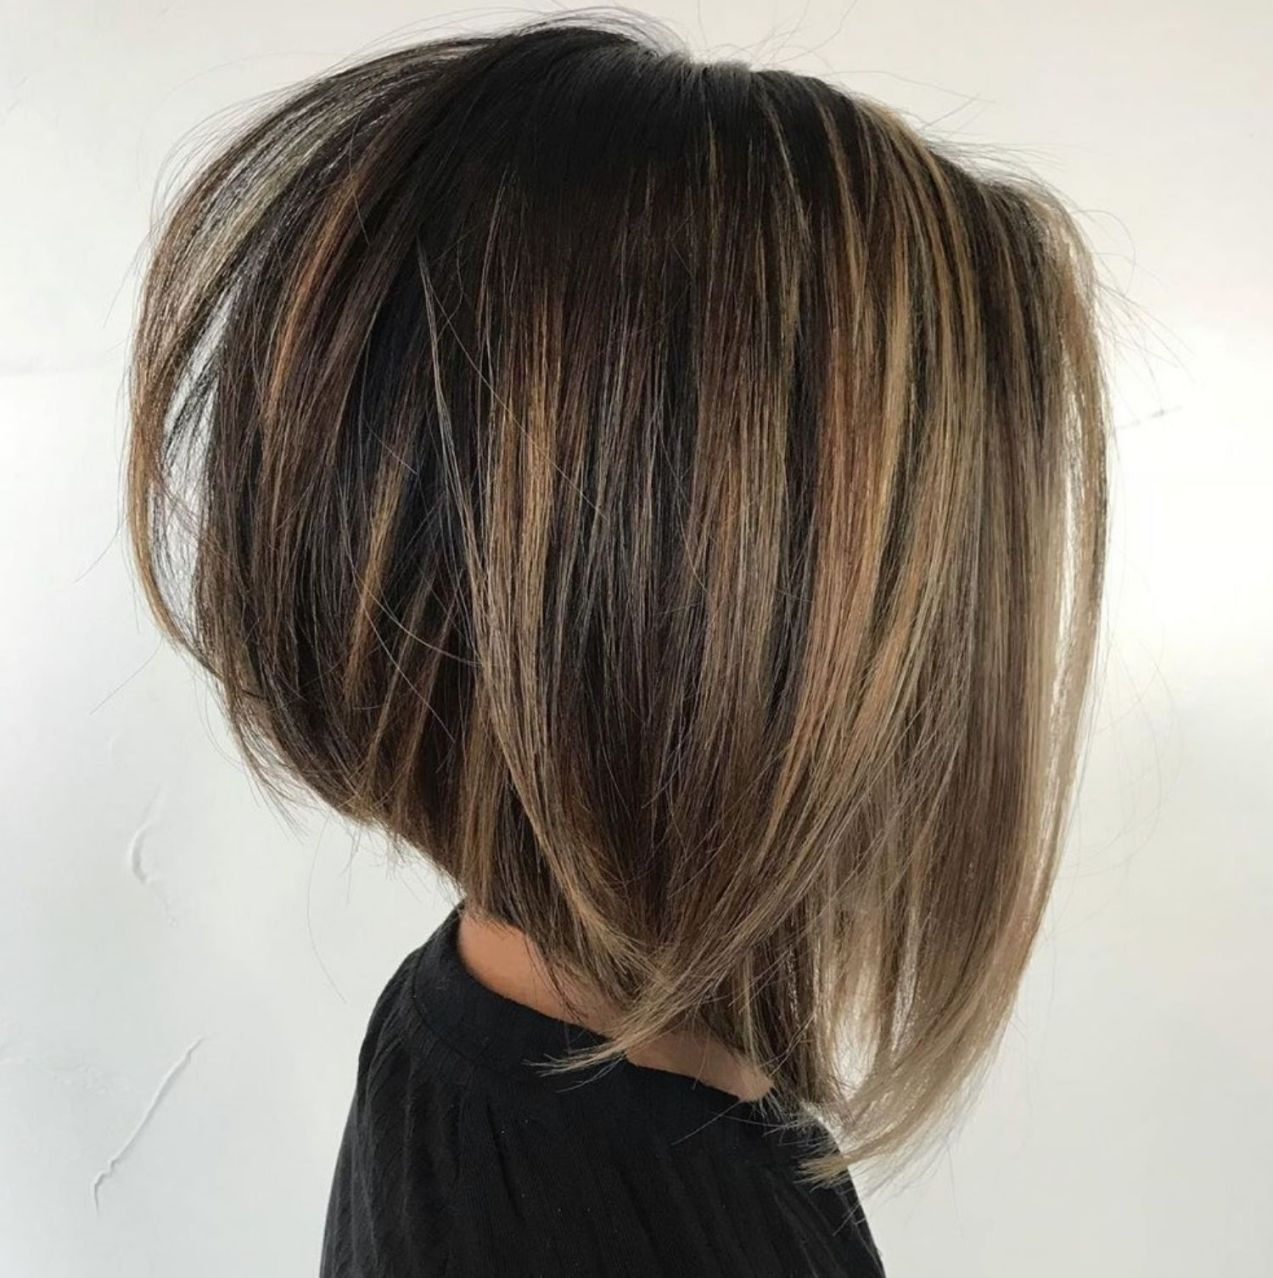 Stacked Bob For Straight Thick Hair In 2020 Haircut For Thick Hair Hair Styles Thick Hair Styles